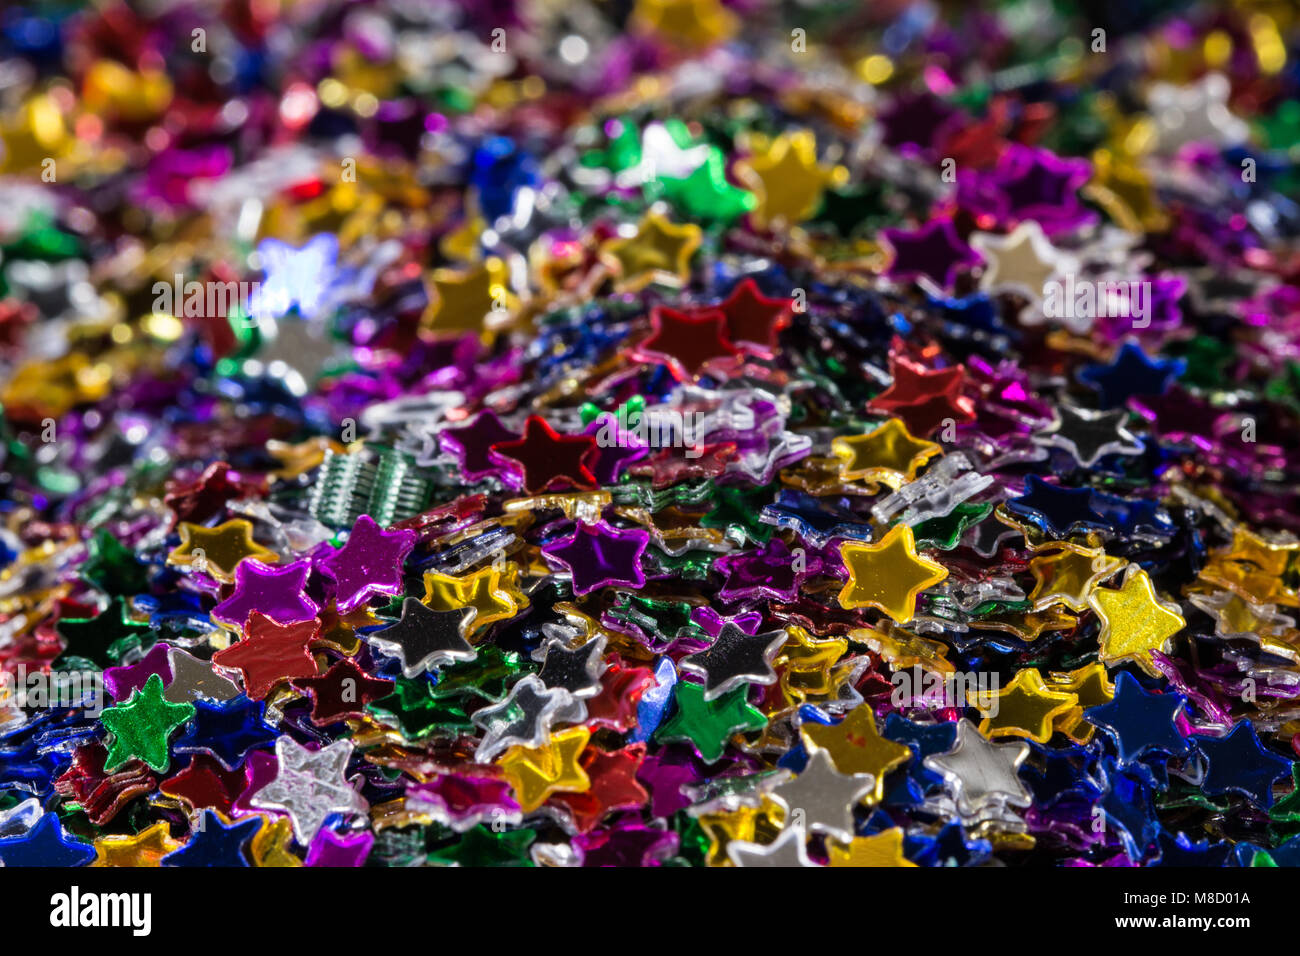 A mound of Colourful glittering festive stars, studio image - Stock Image